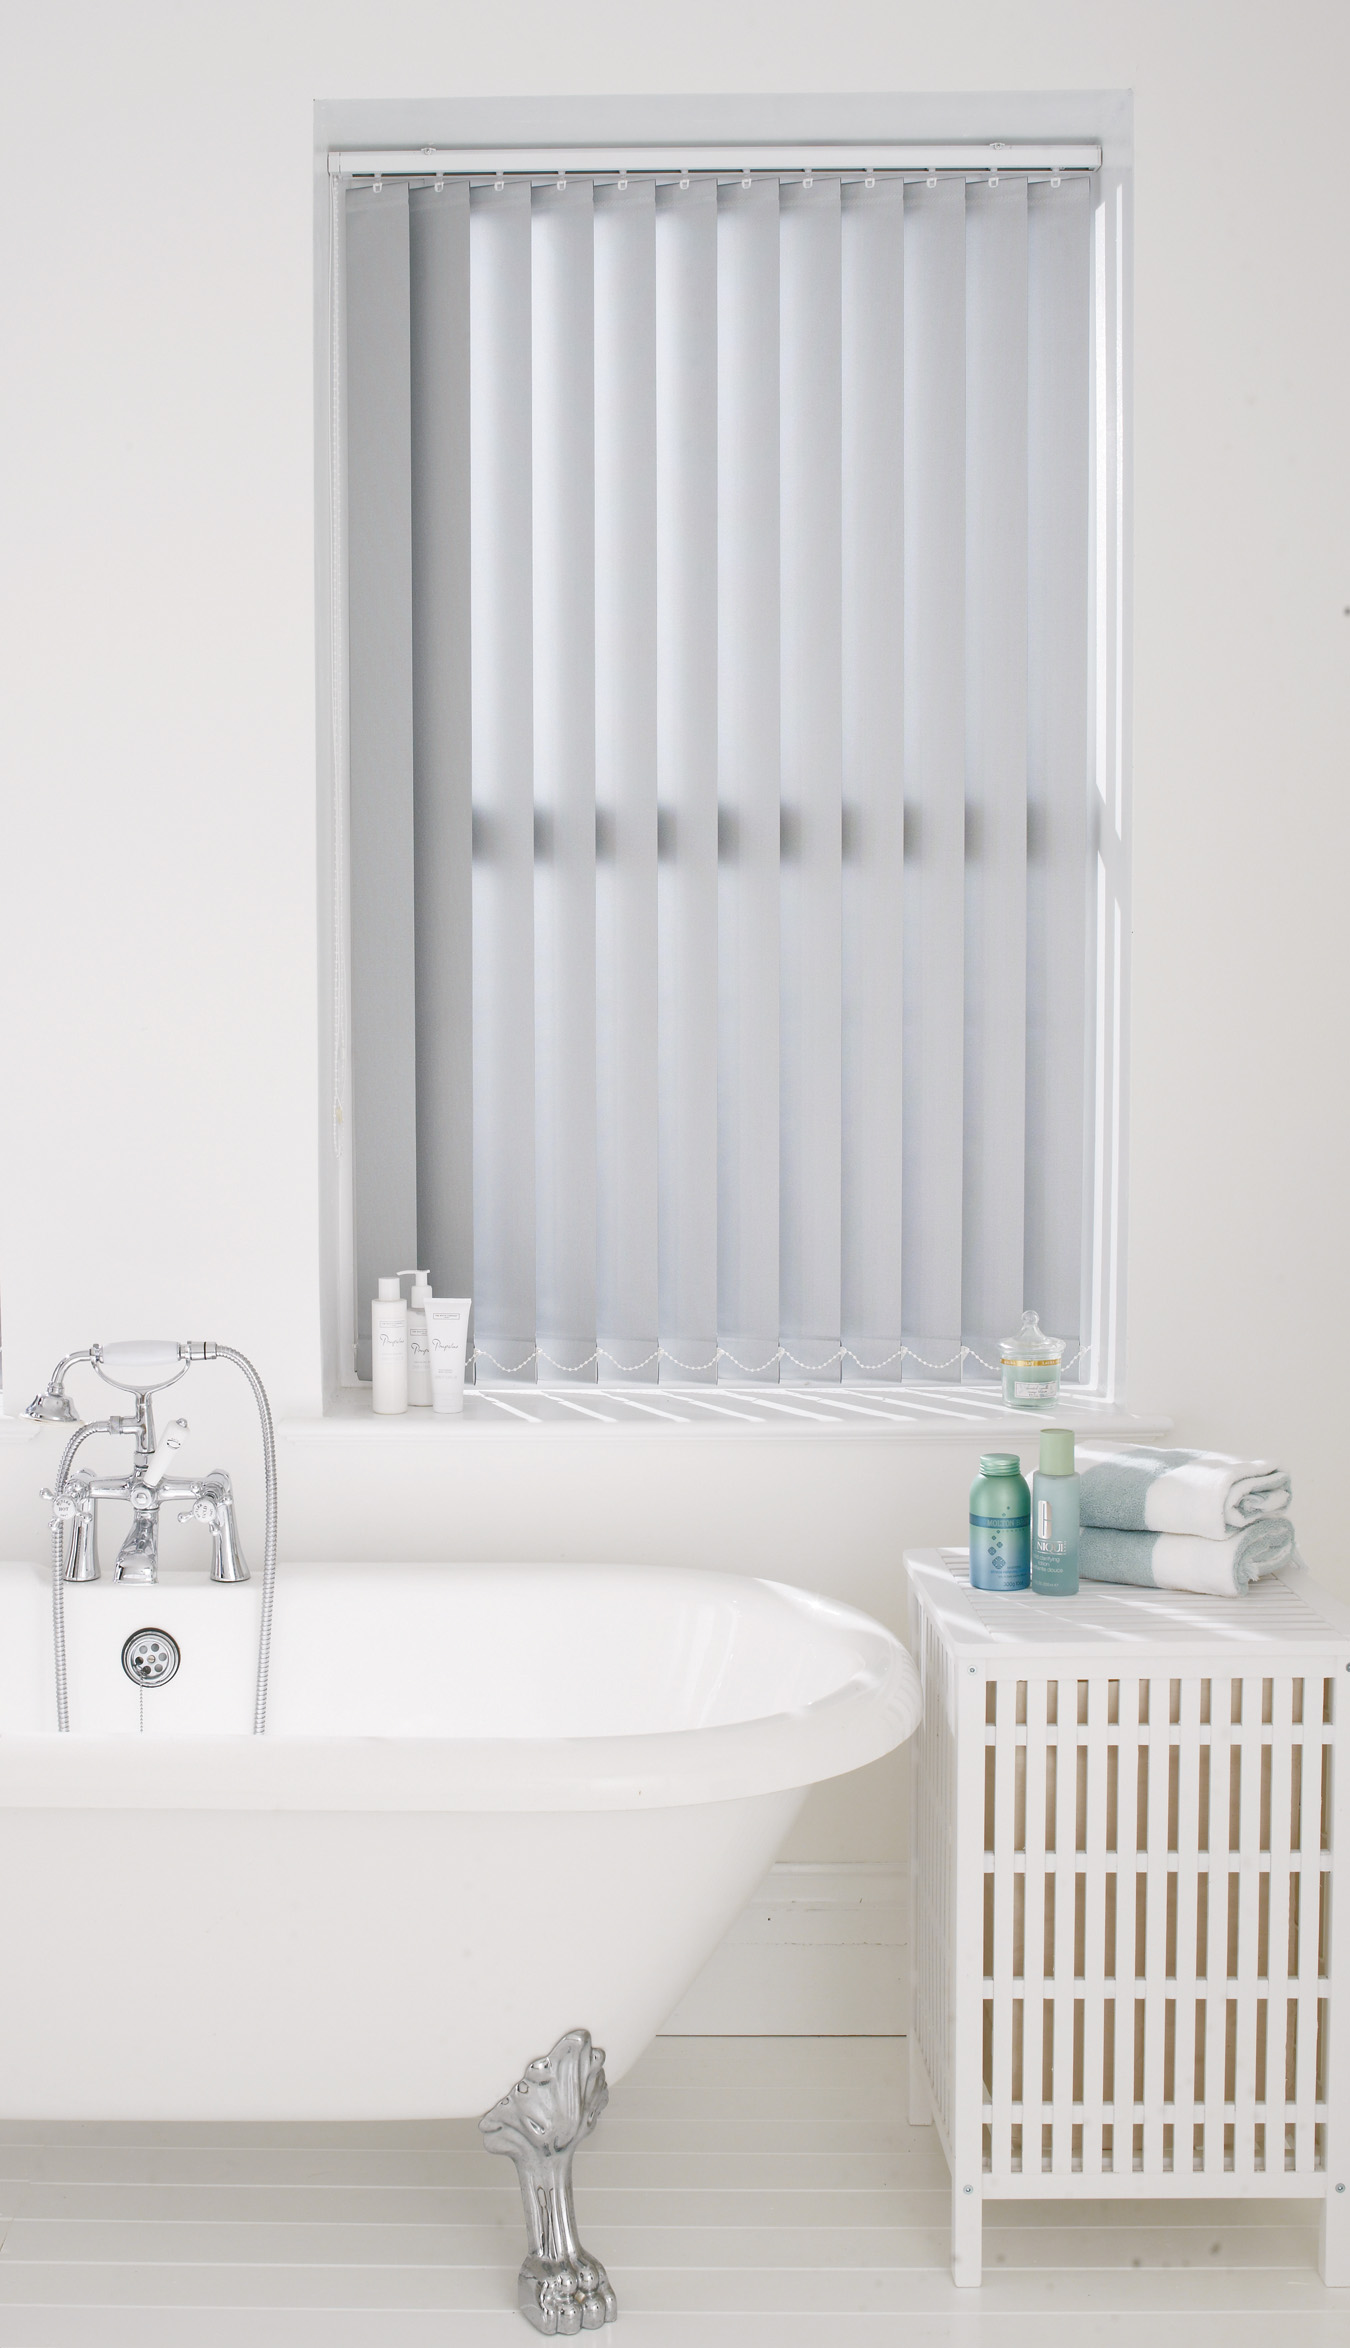 a wooden we room and think window the which for latte blinds direct choosing is setting bit blog answer bathroom apparent makes do bathrooms are all to have when best logically itself